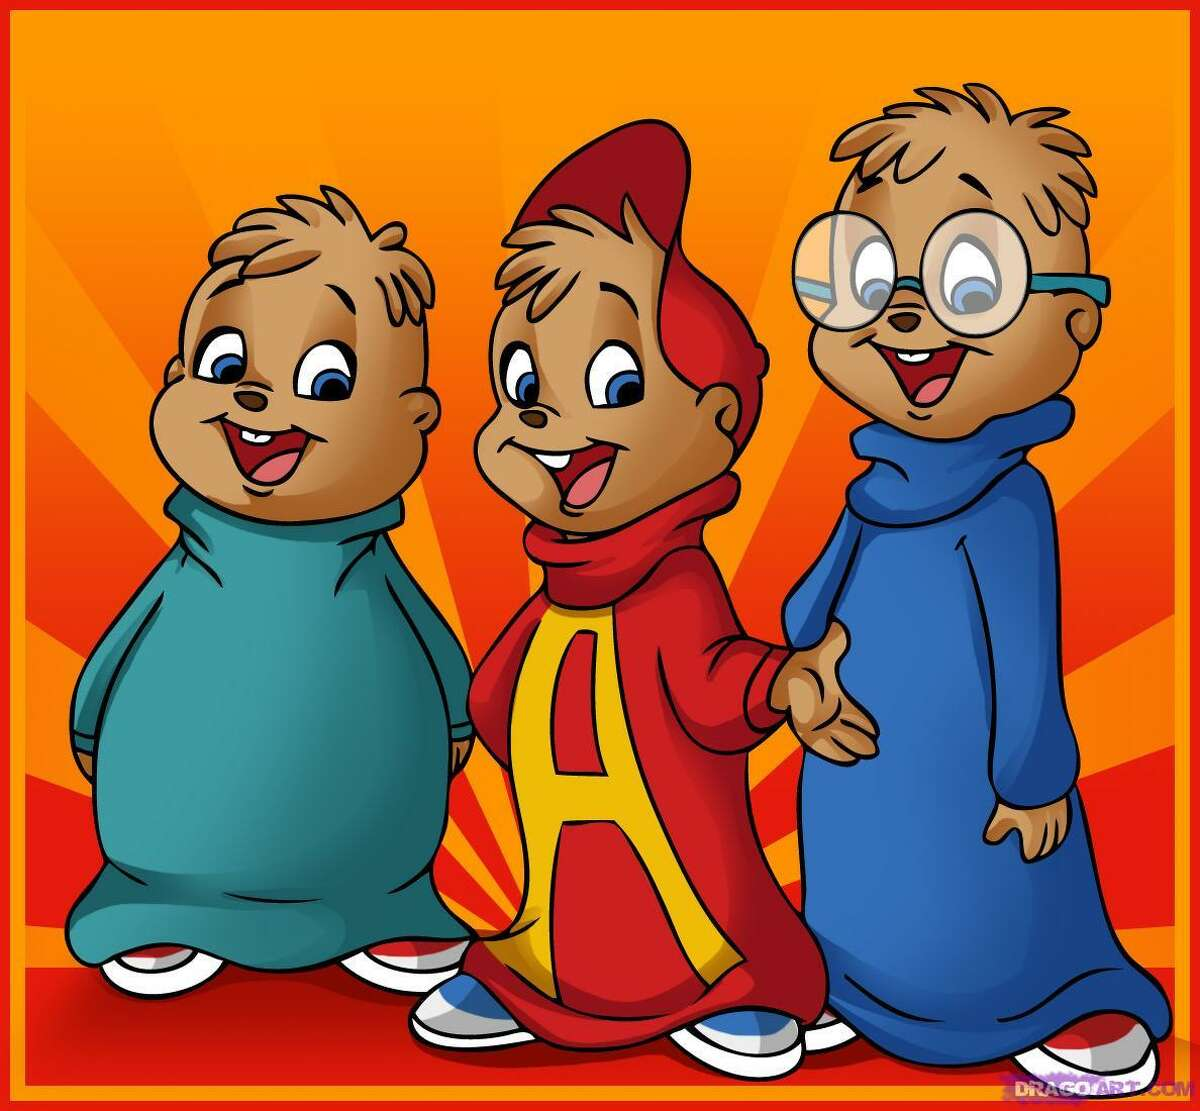 """There are ways to be nice to everyone during the holidays, even those who like Alvin and the Chipmunks' """"""""The Chipmunk Song."""""""